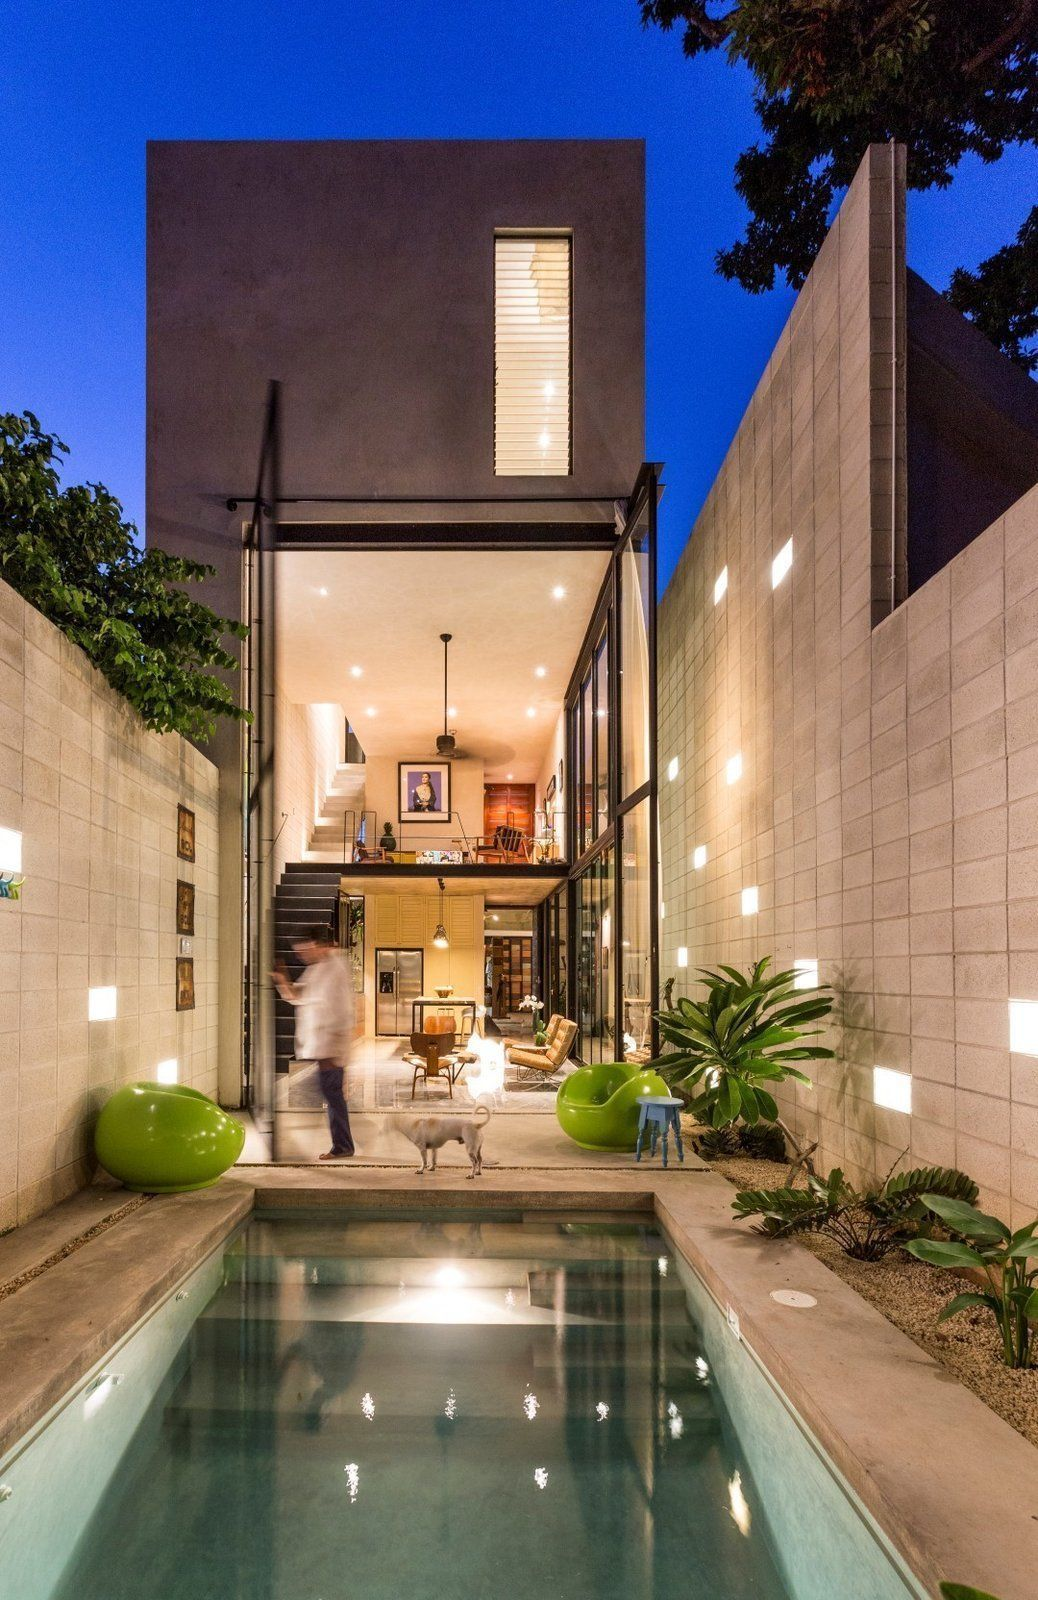 How To Create A Modern Outdoor Oasis Enjoy Year Round Photo 1 Of 8 The Back Home Glows At Night As Giant Two Story Gl Doors Swing Open